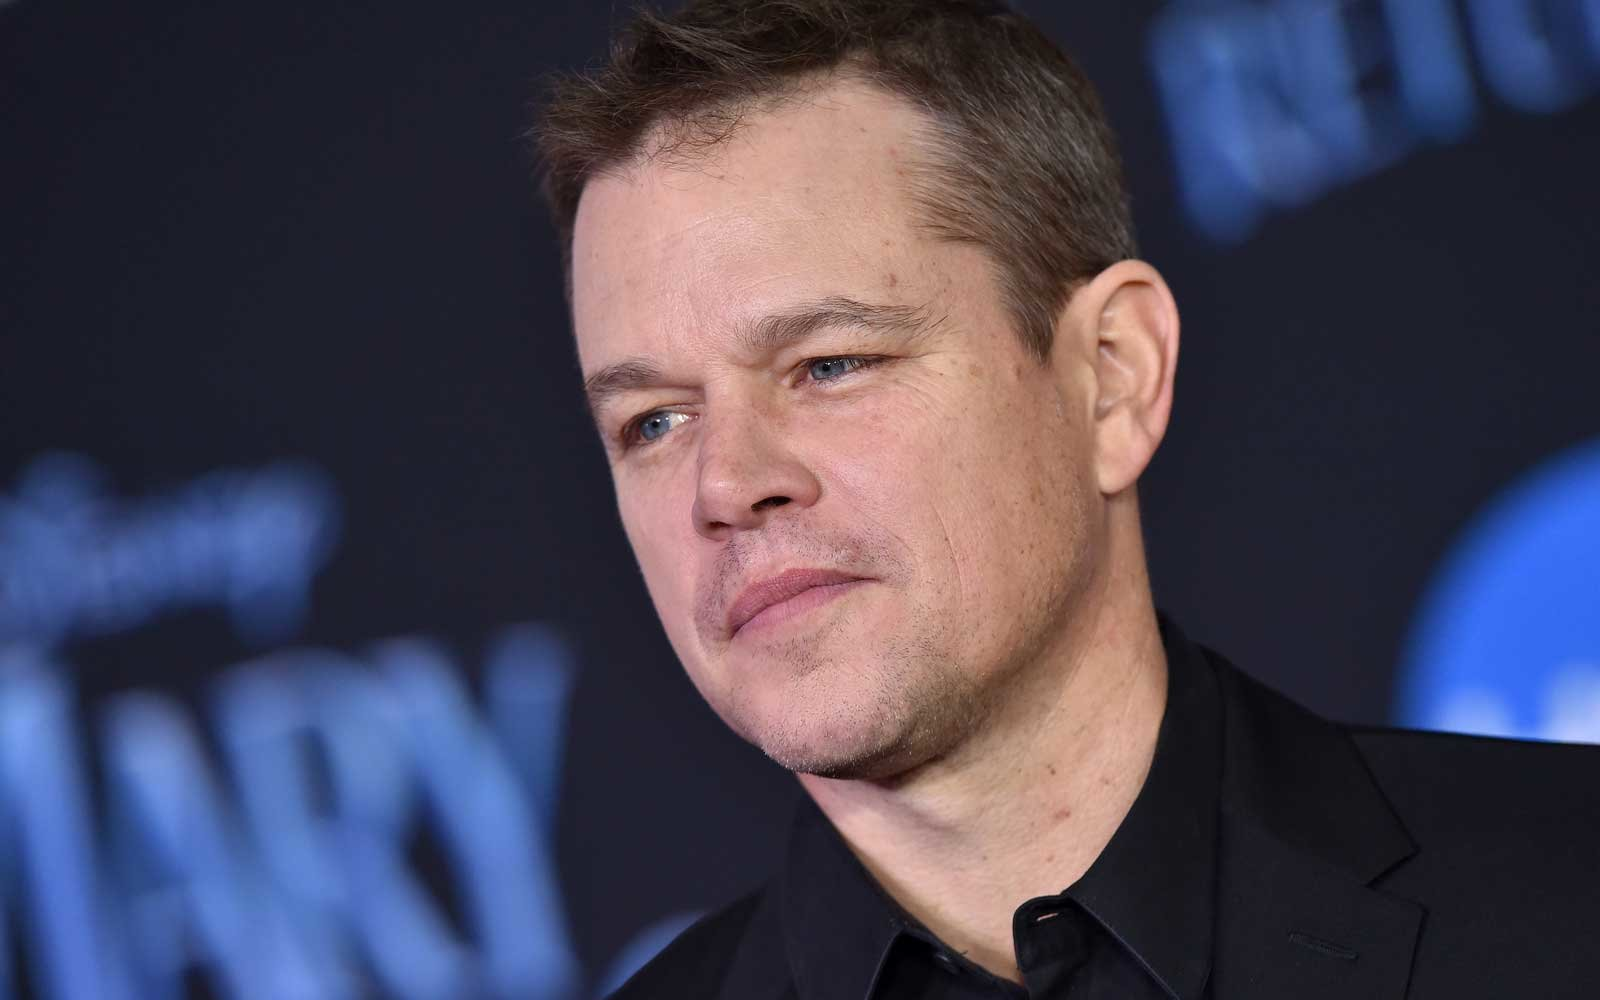 Matt Damon Had To Borrow A Suit For His Davos Speech After